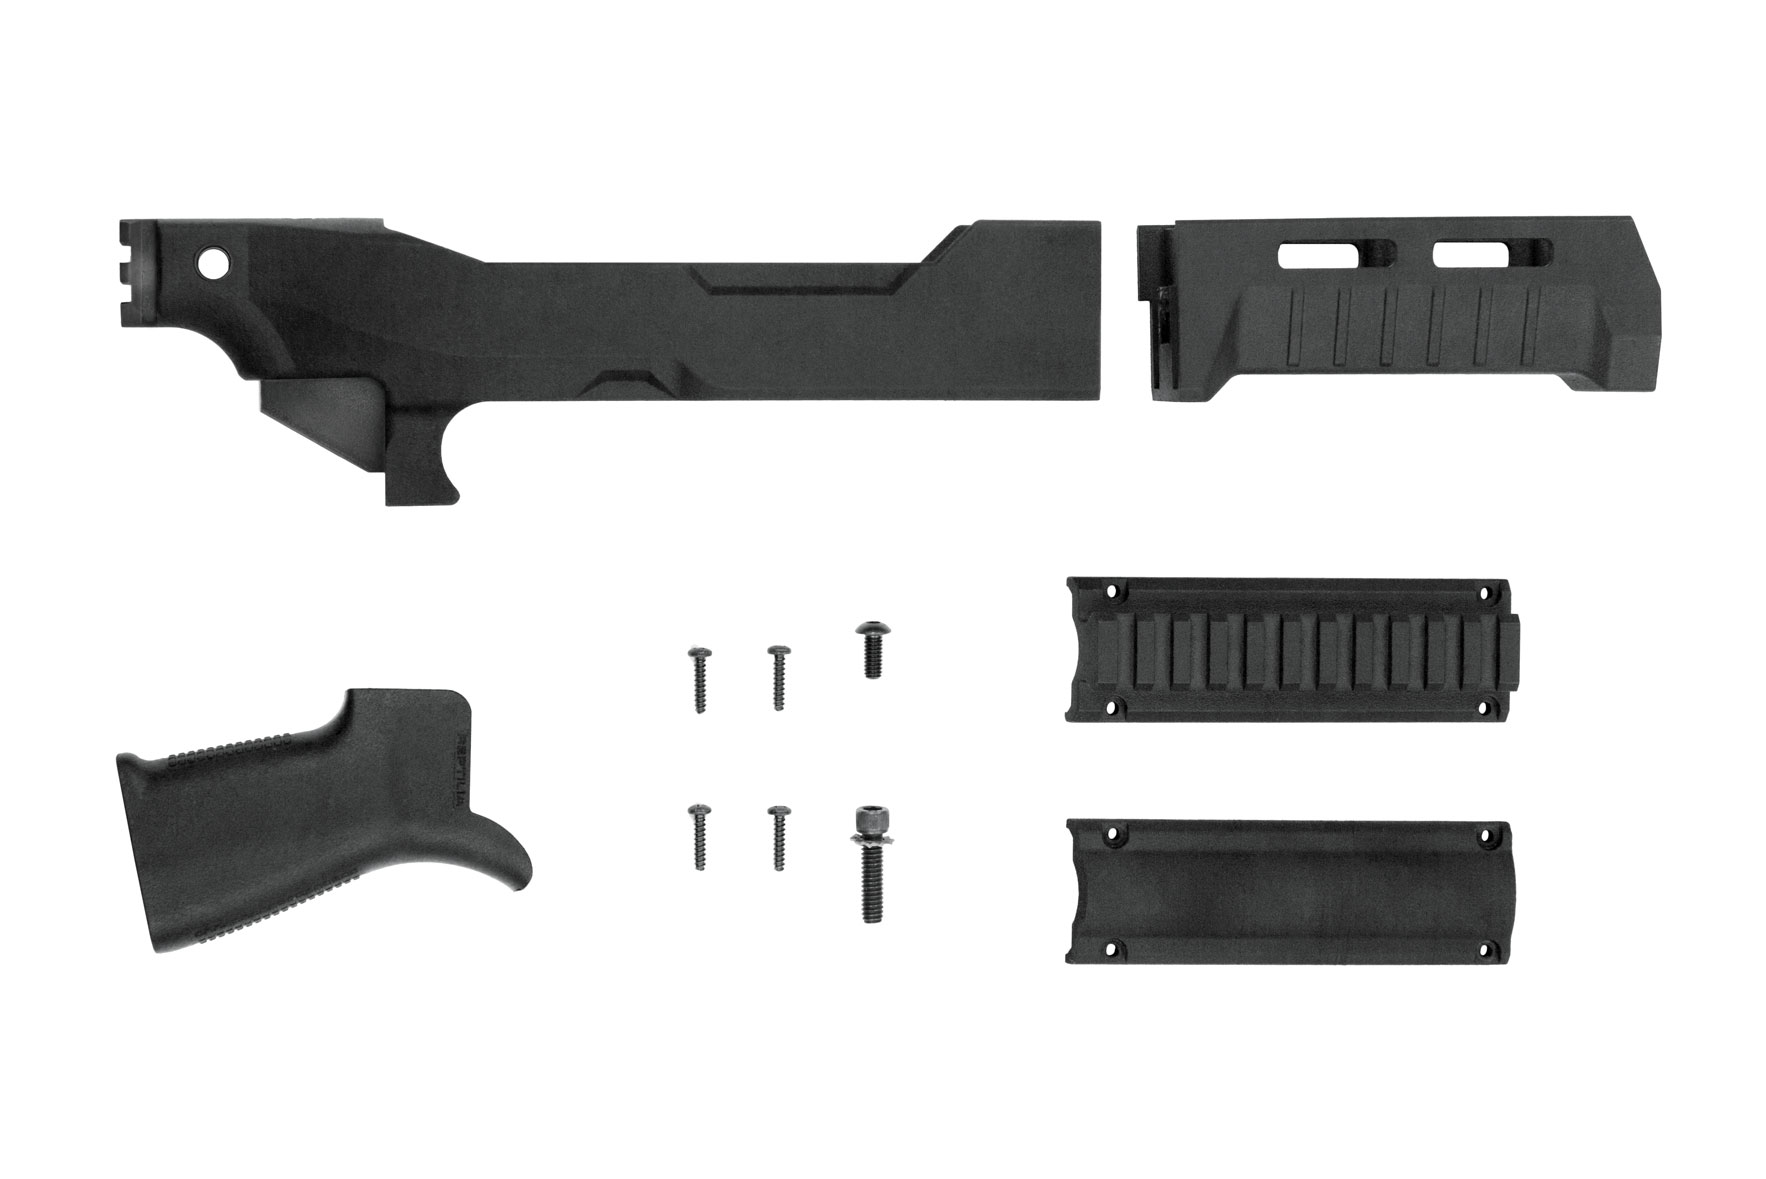 sb tactical sb22 chassis ruger 1022 chassis unity tactical